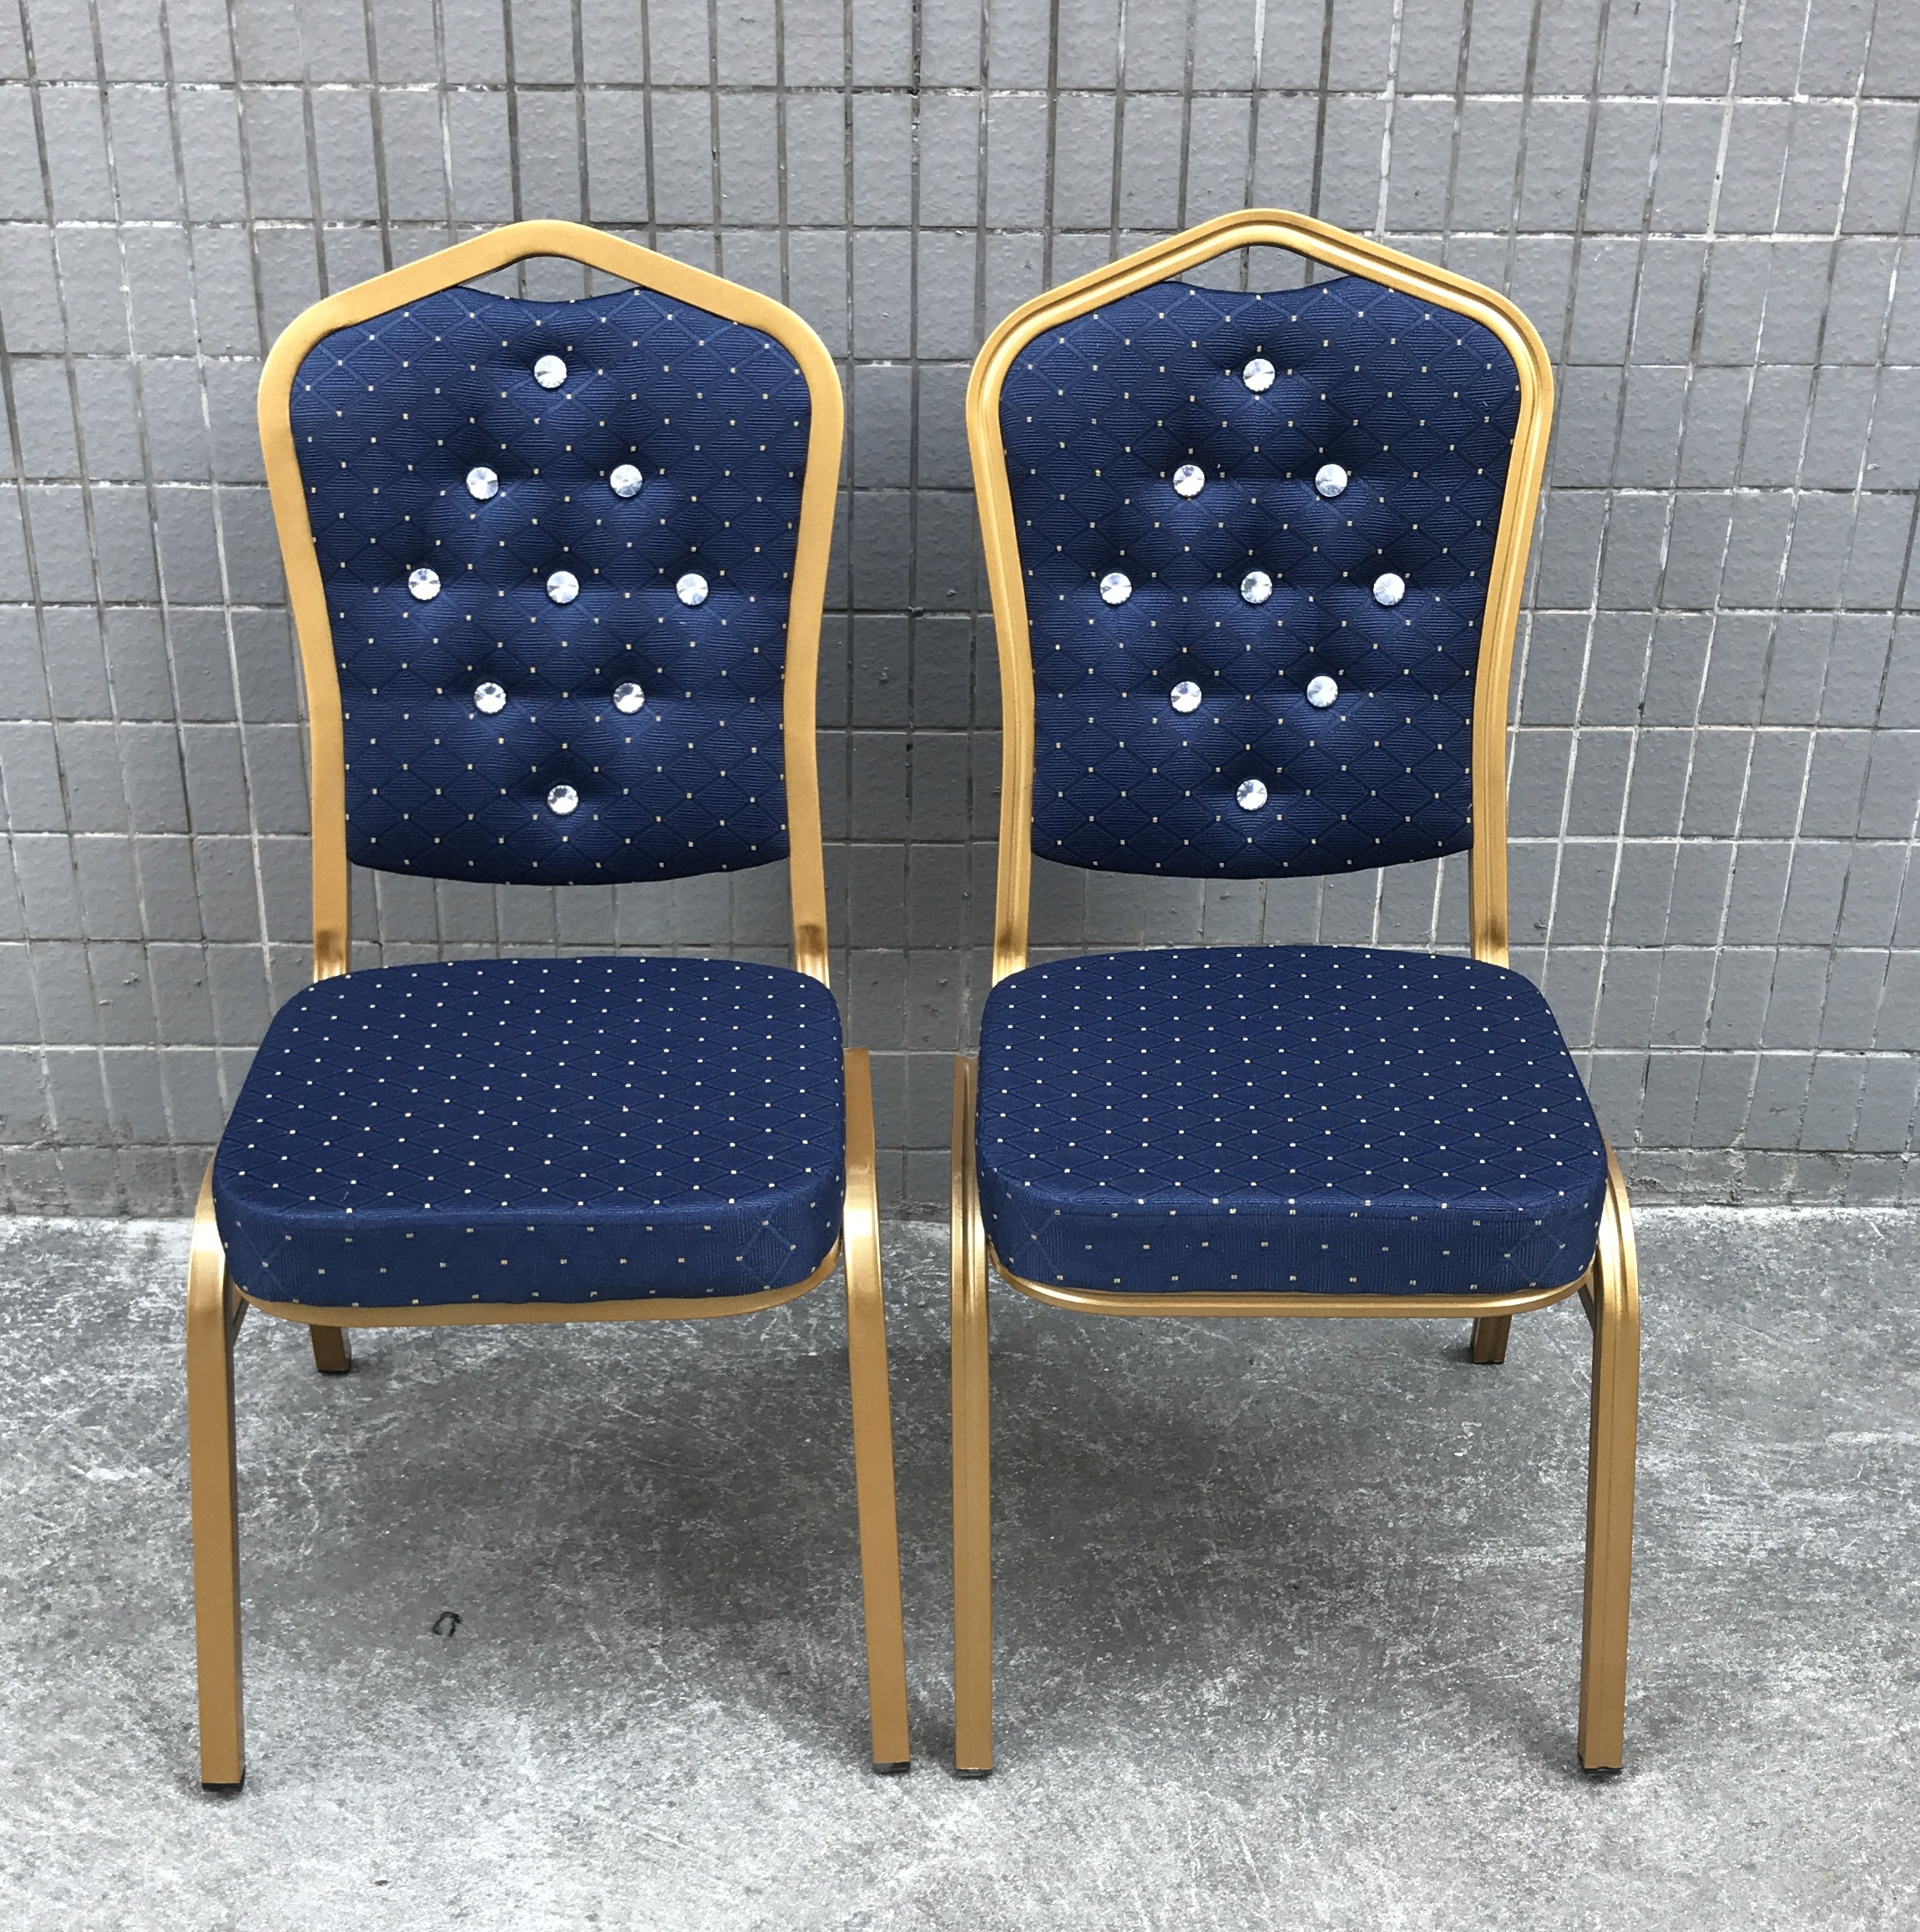 Lowest Price for Church Chair With Bookshelf -